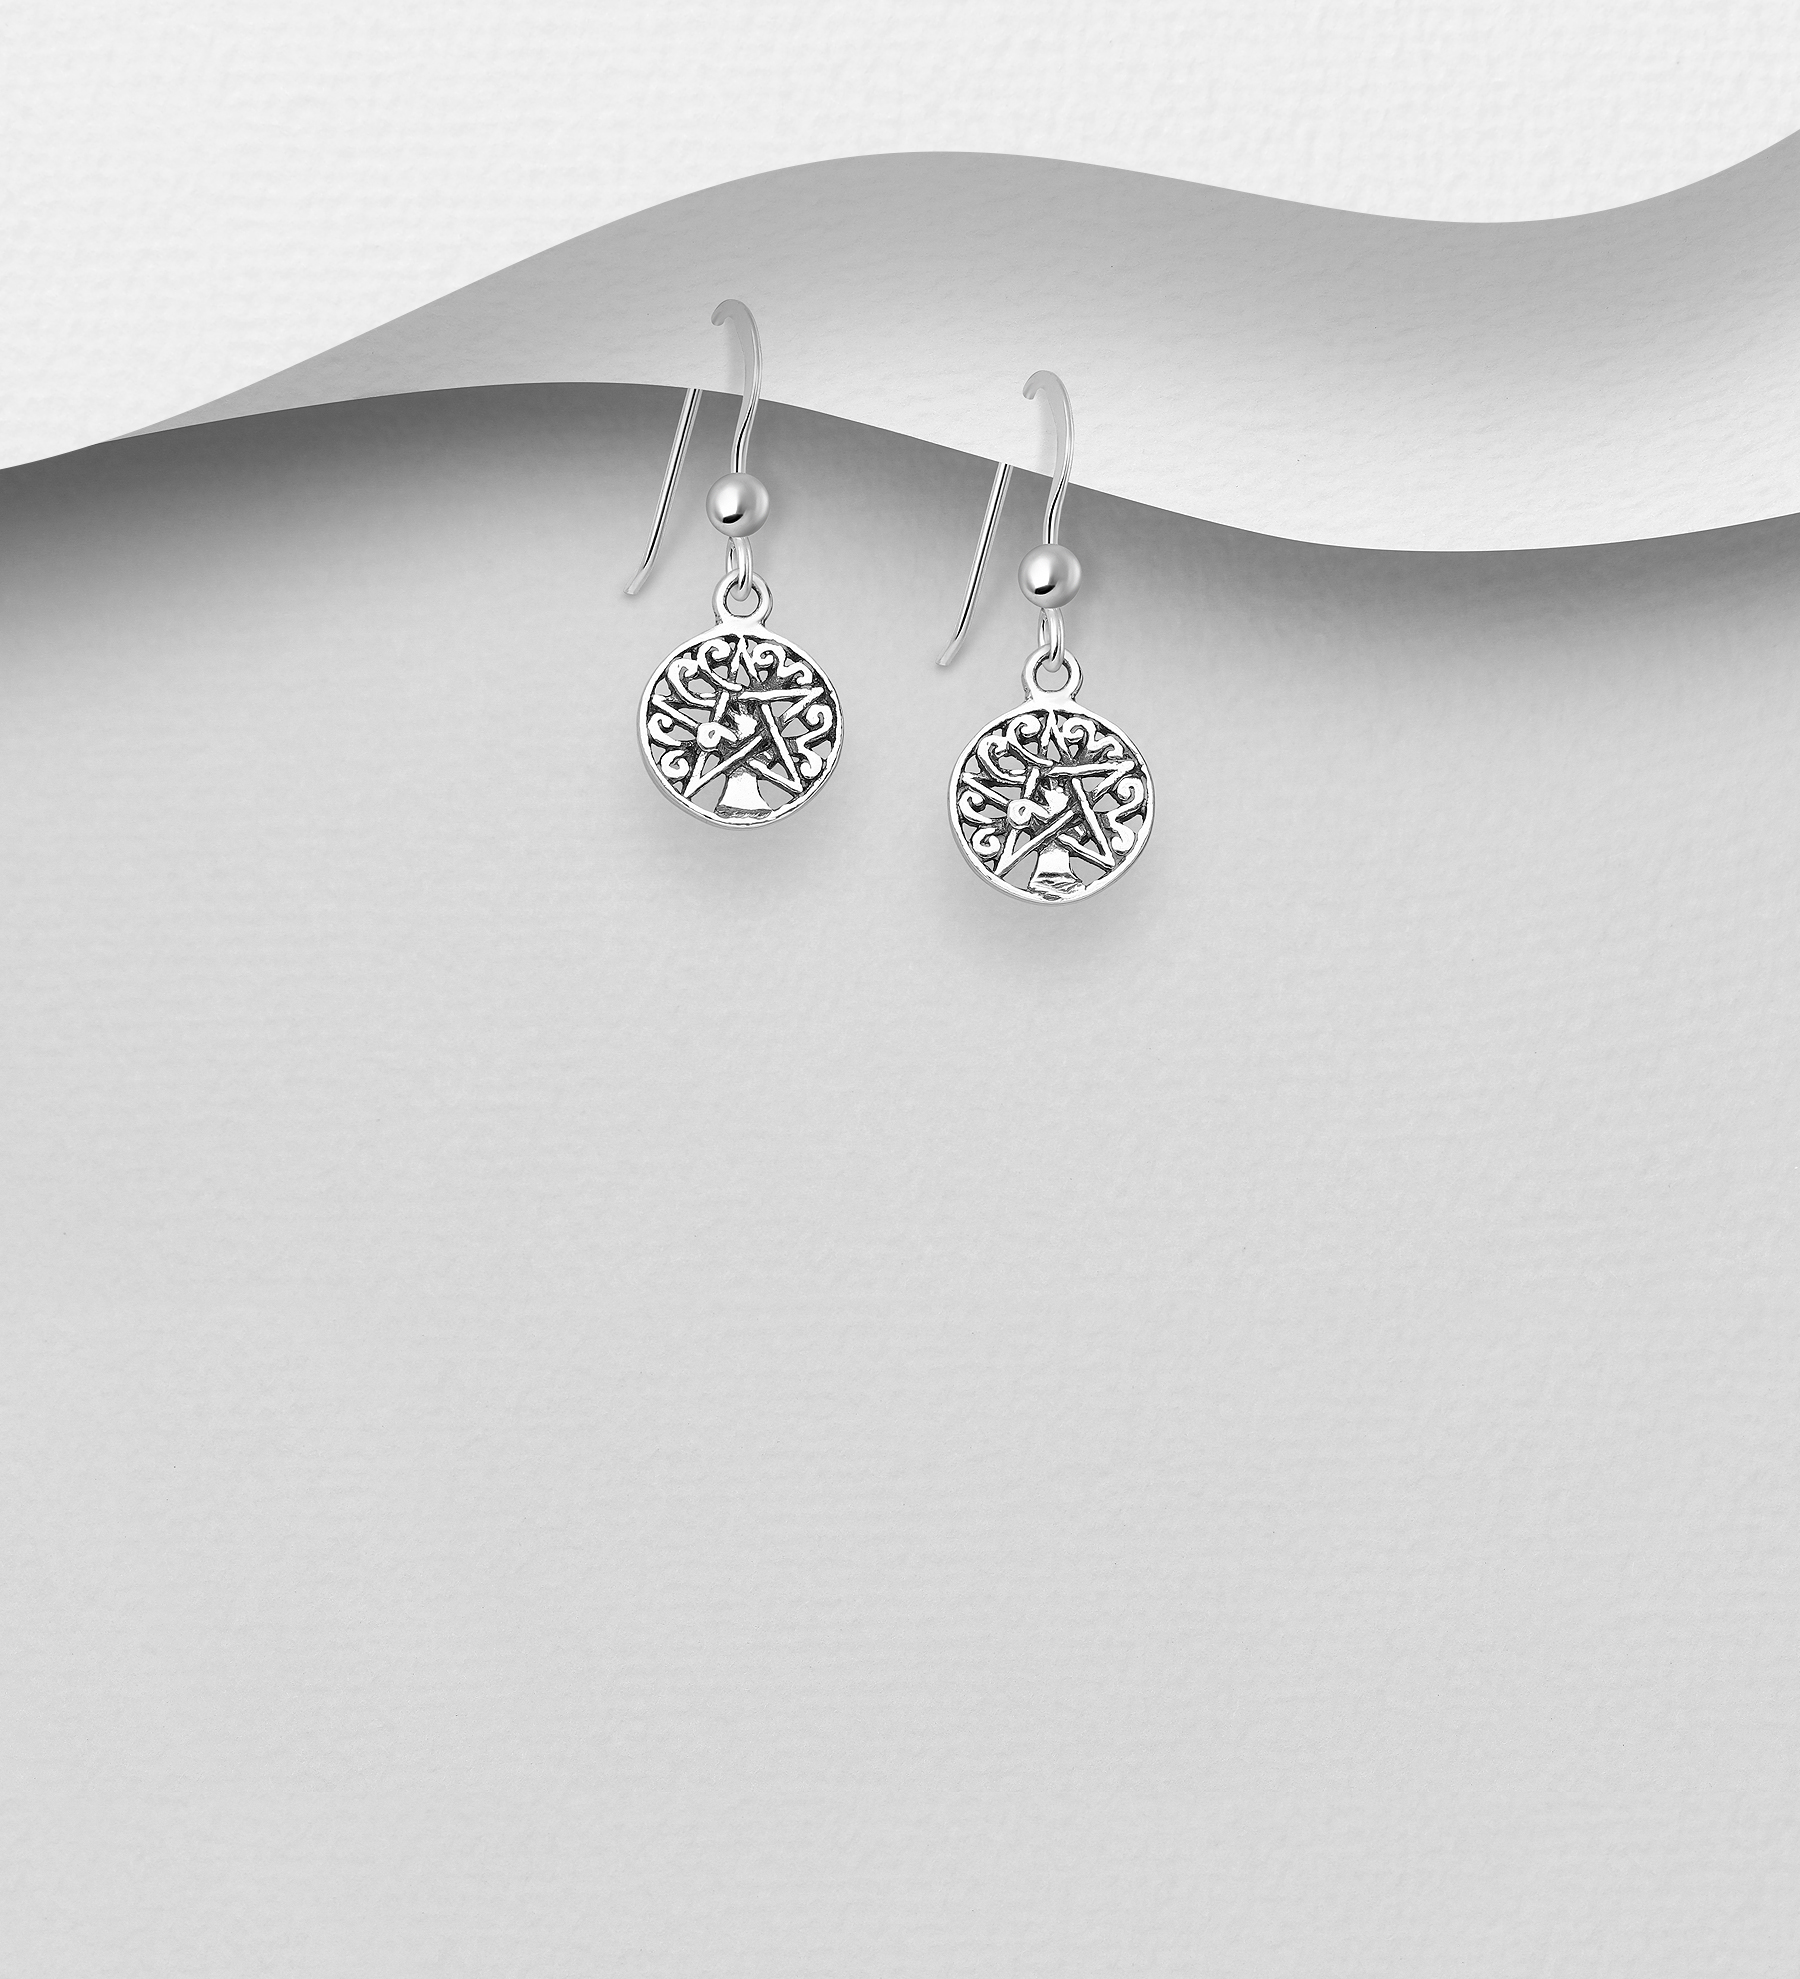 706-30823 - 925 Sterling Silver Oxidized Star and Tree of Life Hook Earrings